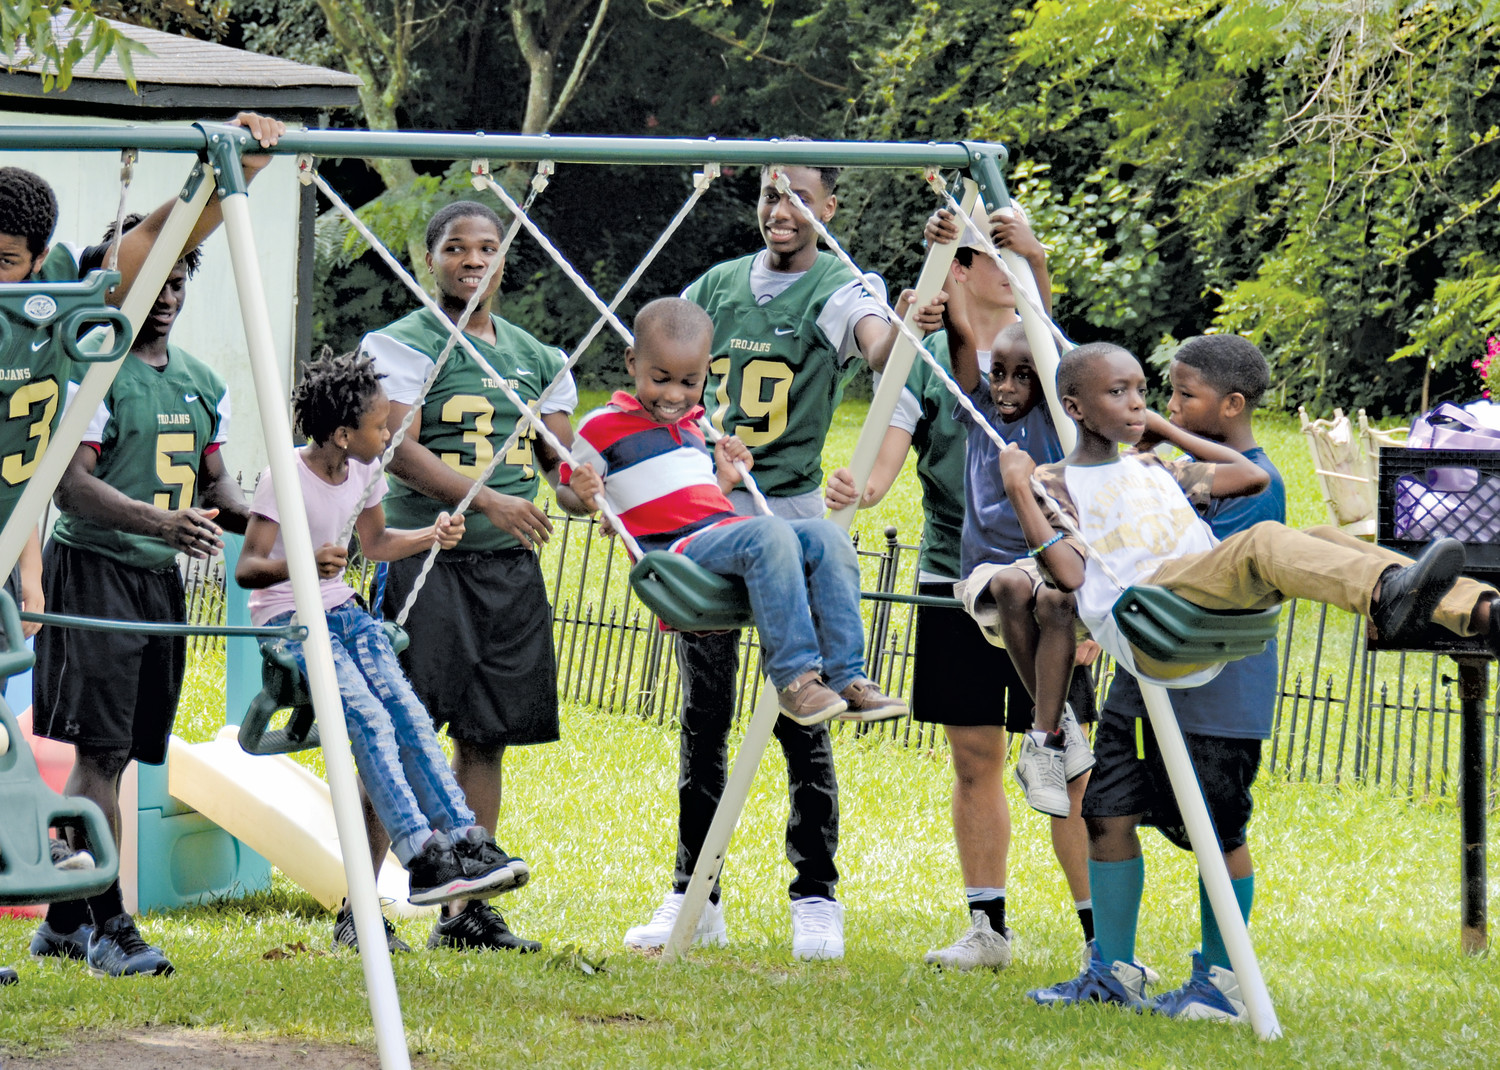 Part of the Four Leaf Clover Program in Benson involves getting the children in Benson out of the house. On Thursday, members of the South Johnston High School Trojans football squad joined the children. Here members of the team are helping some new friends get a little time on the swing set.